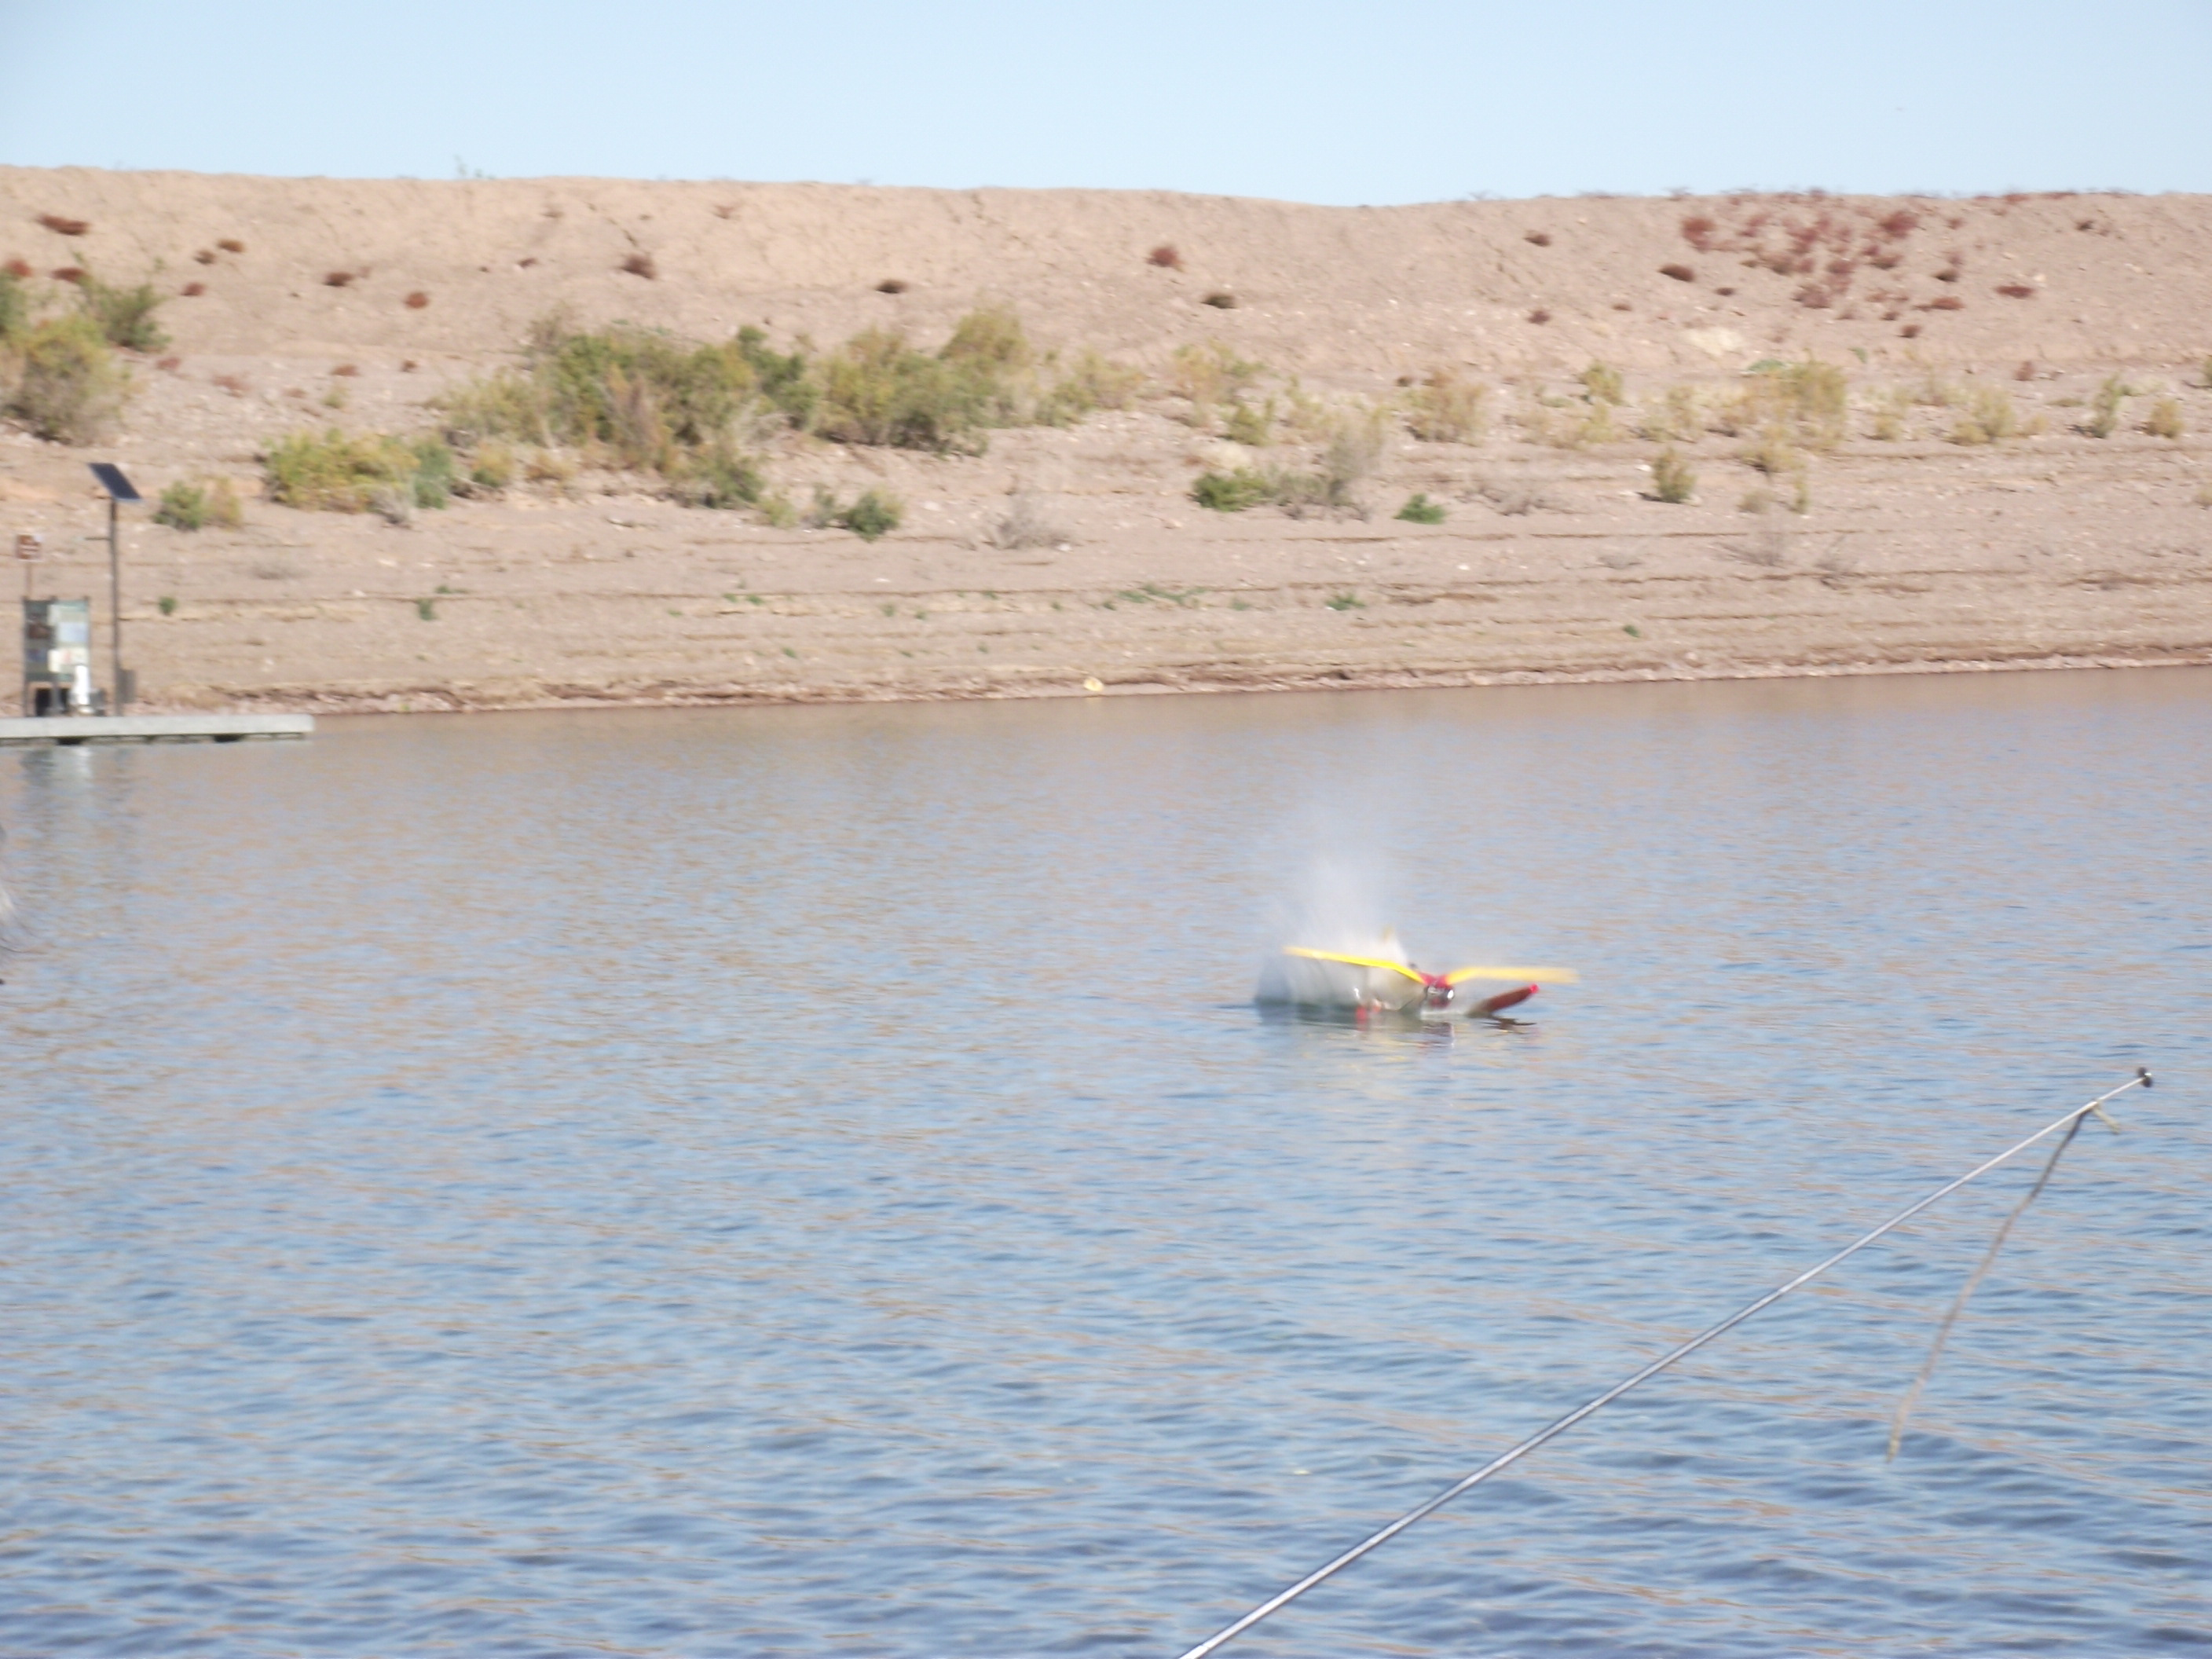 Click image for larger version  Name:2013_1109lakeMead0004.JPG Views:133 Size:1.13 MB ID:1942352